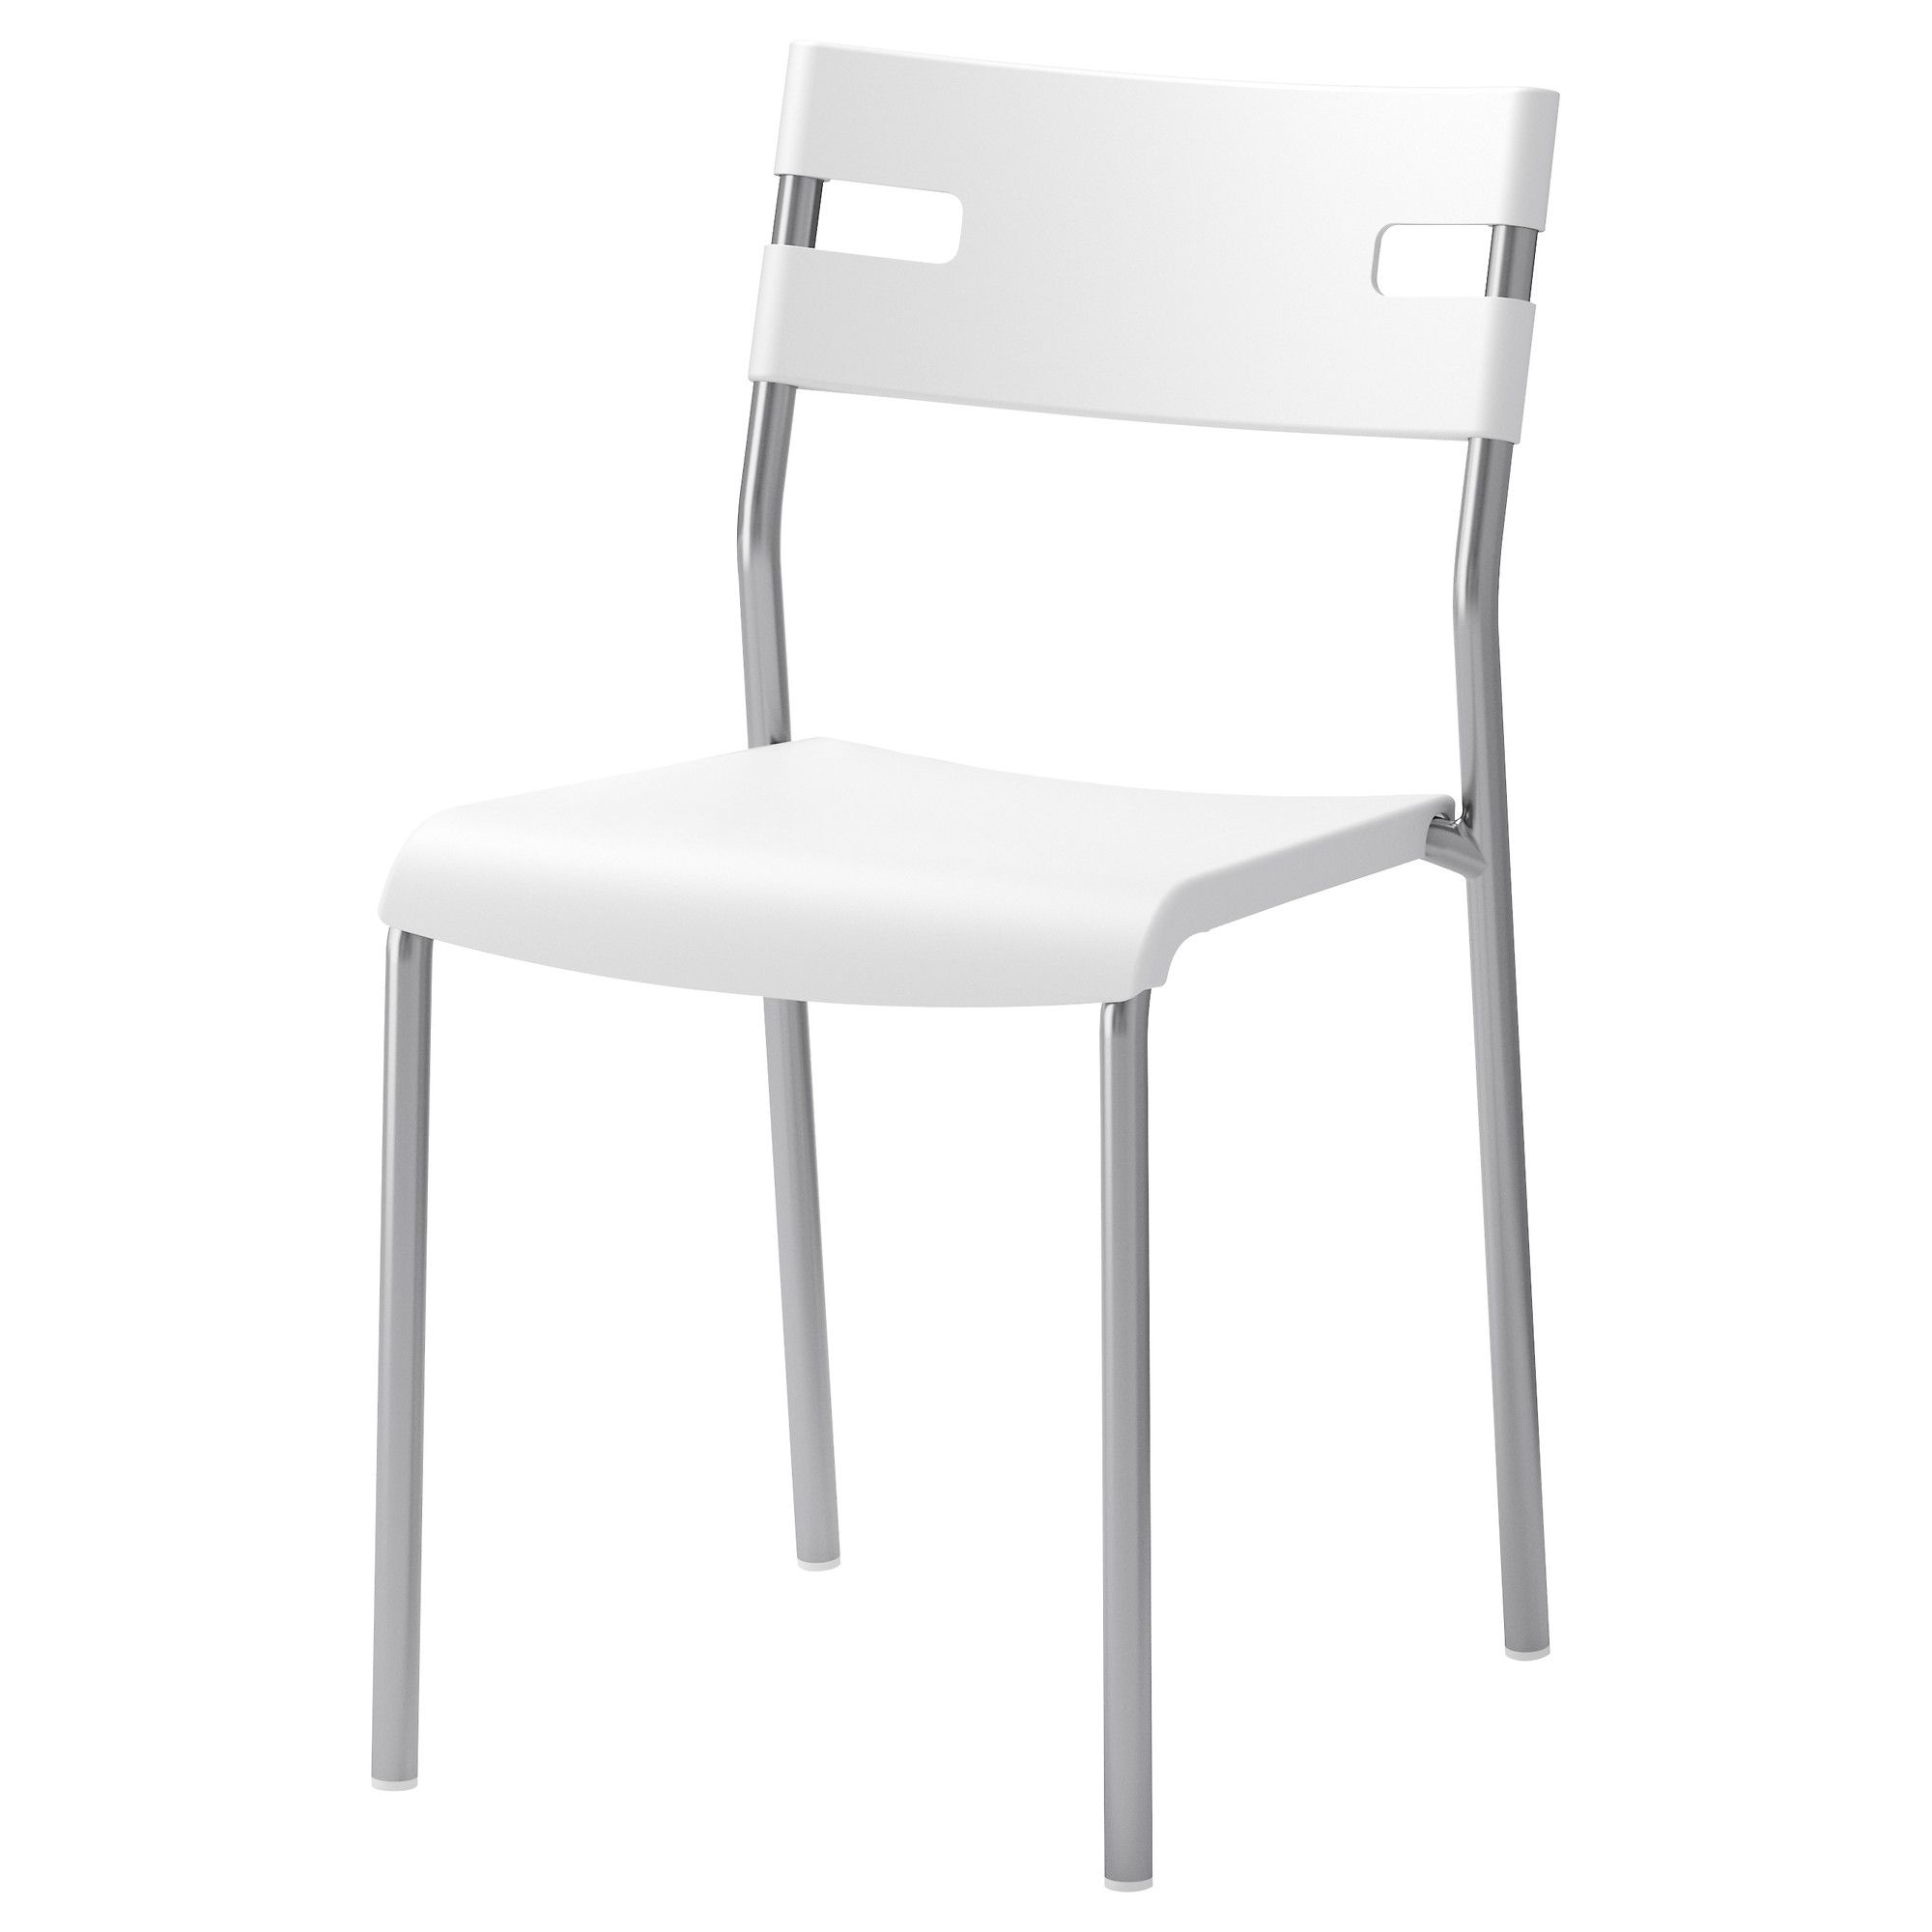 LAVER Chair   IKEA; $10; Chrome And White, Supposedly Goes With Table.